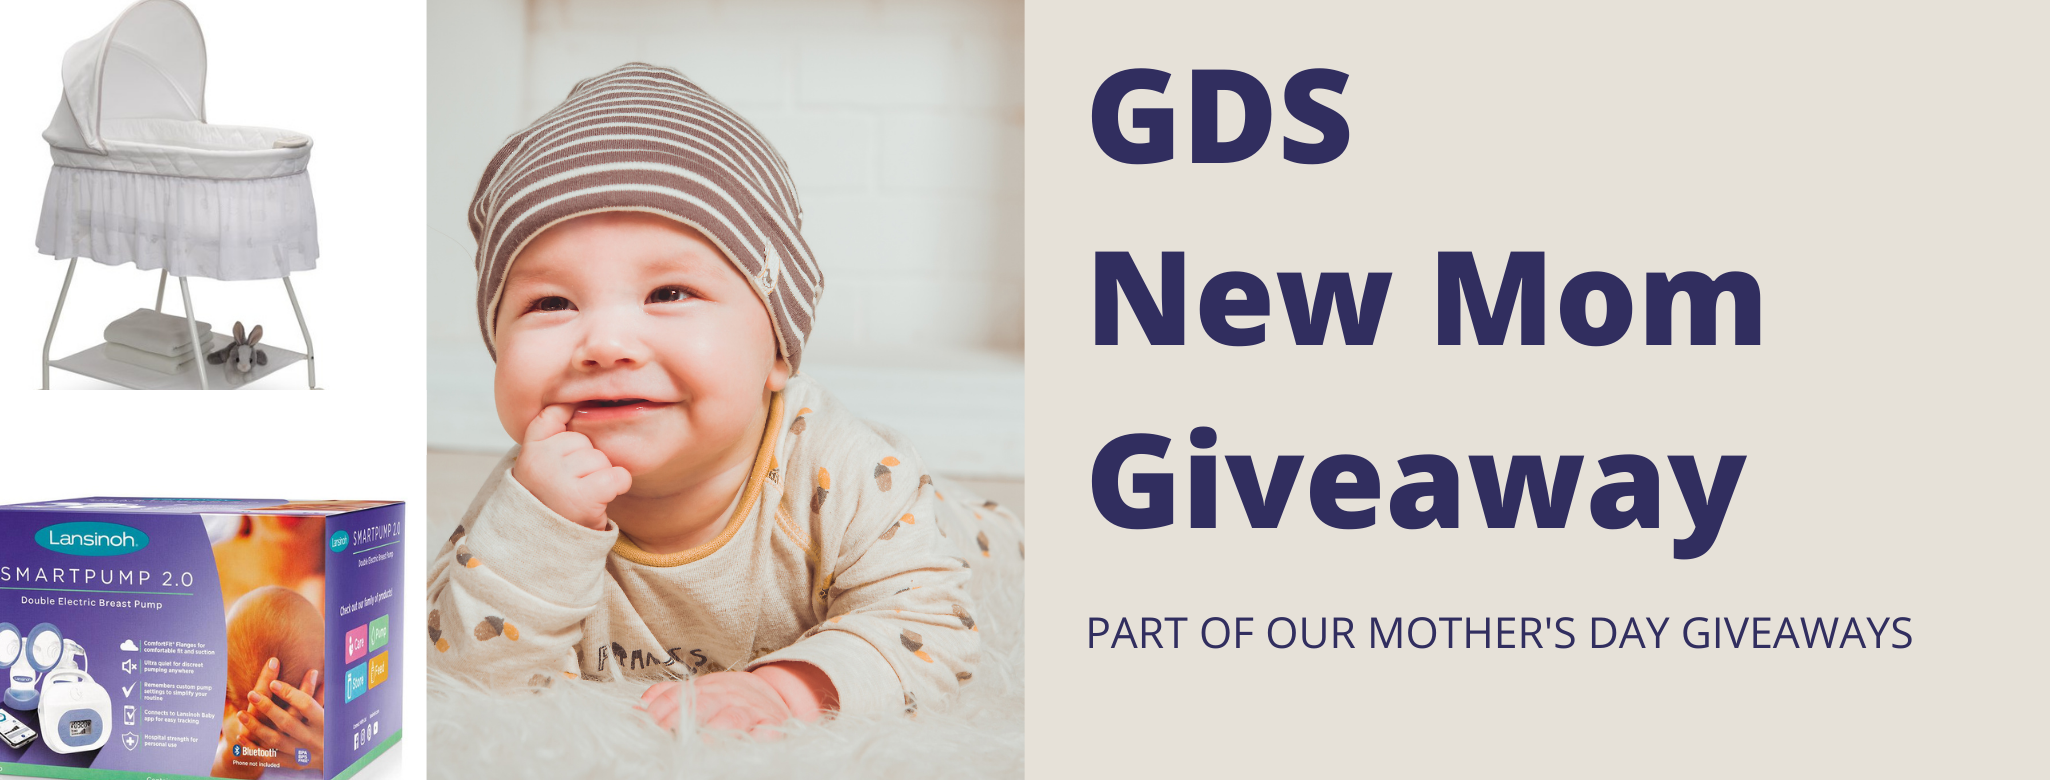 GDS New Mom Giveaway